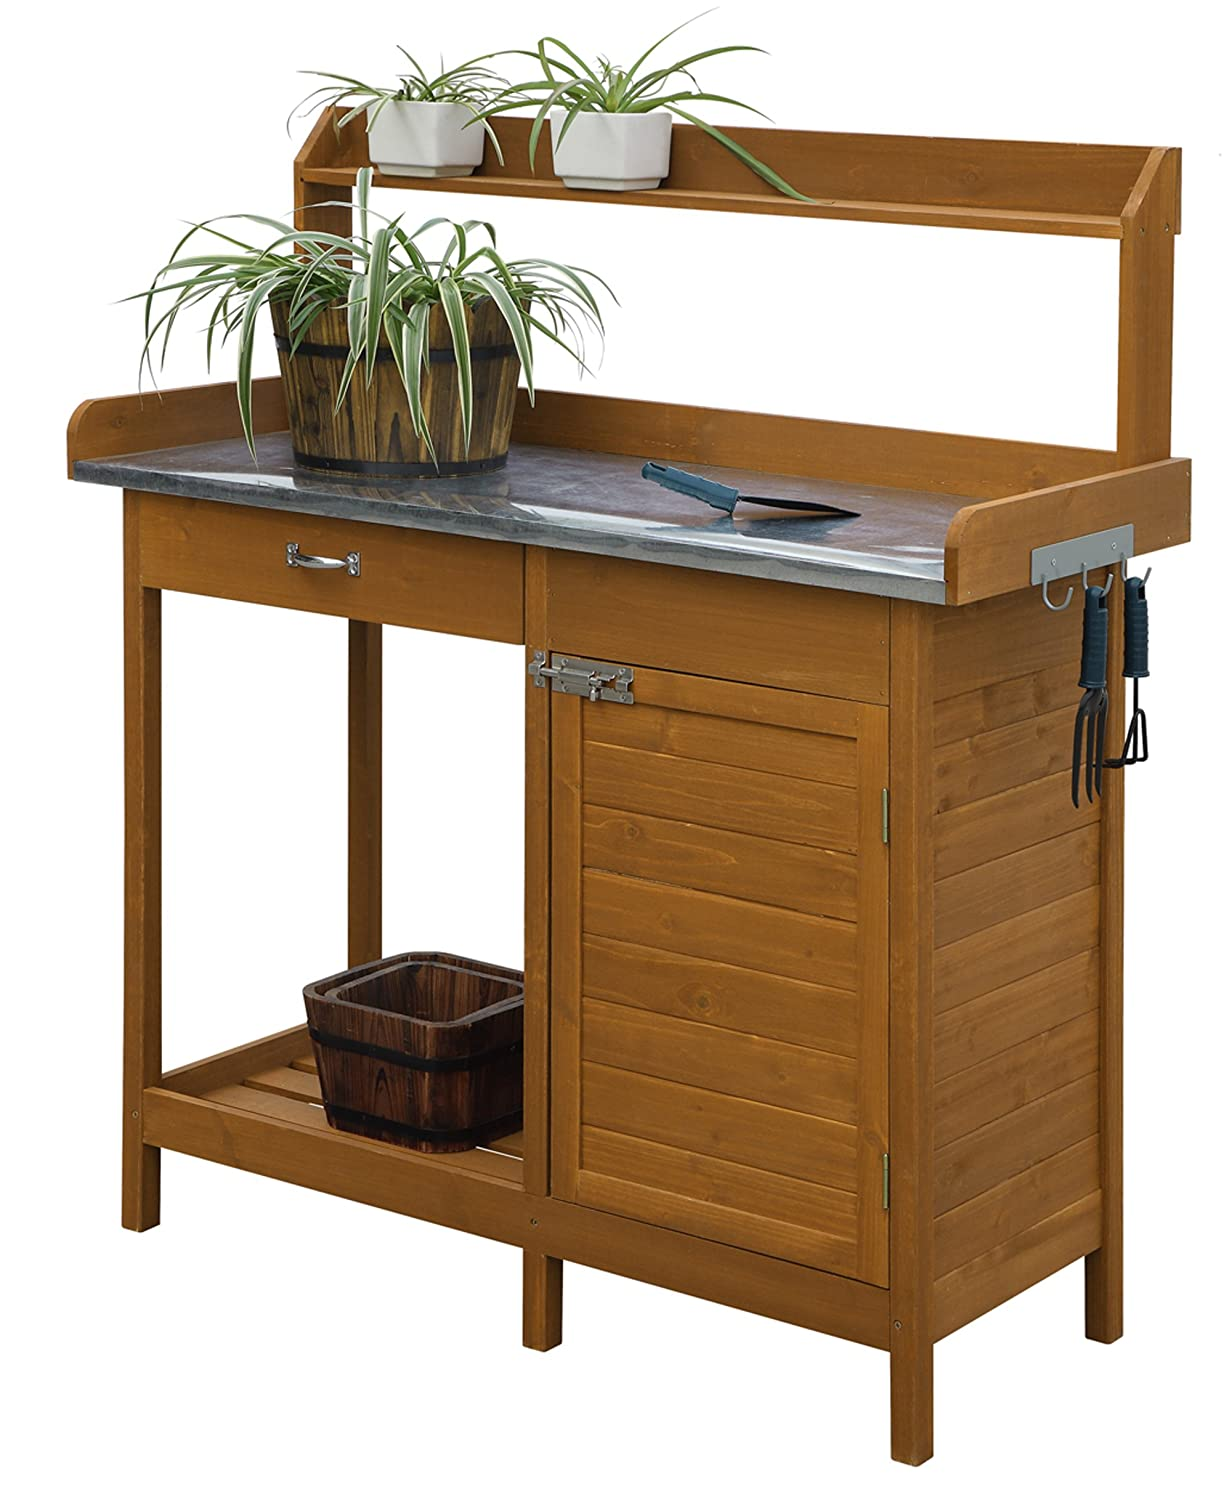 Amazon.com : Convenience Concepts Deluxe Potting Bench With Cabinet : Garden  U0026 Outdoor